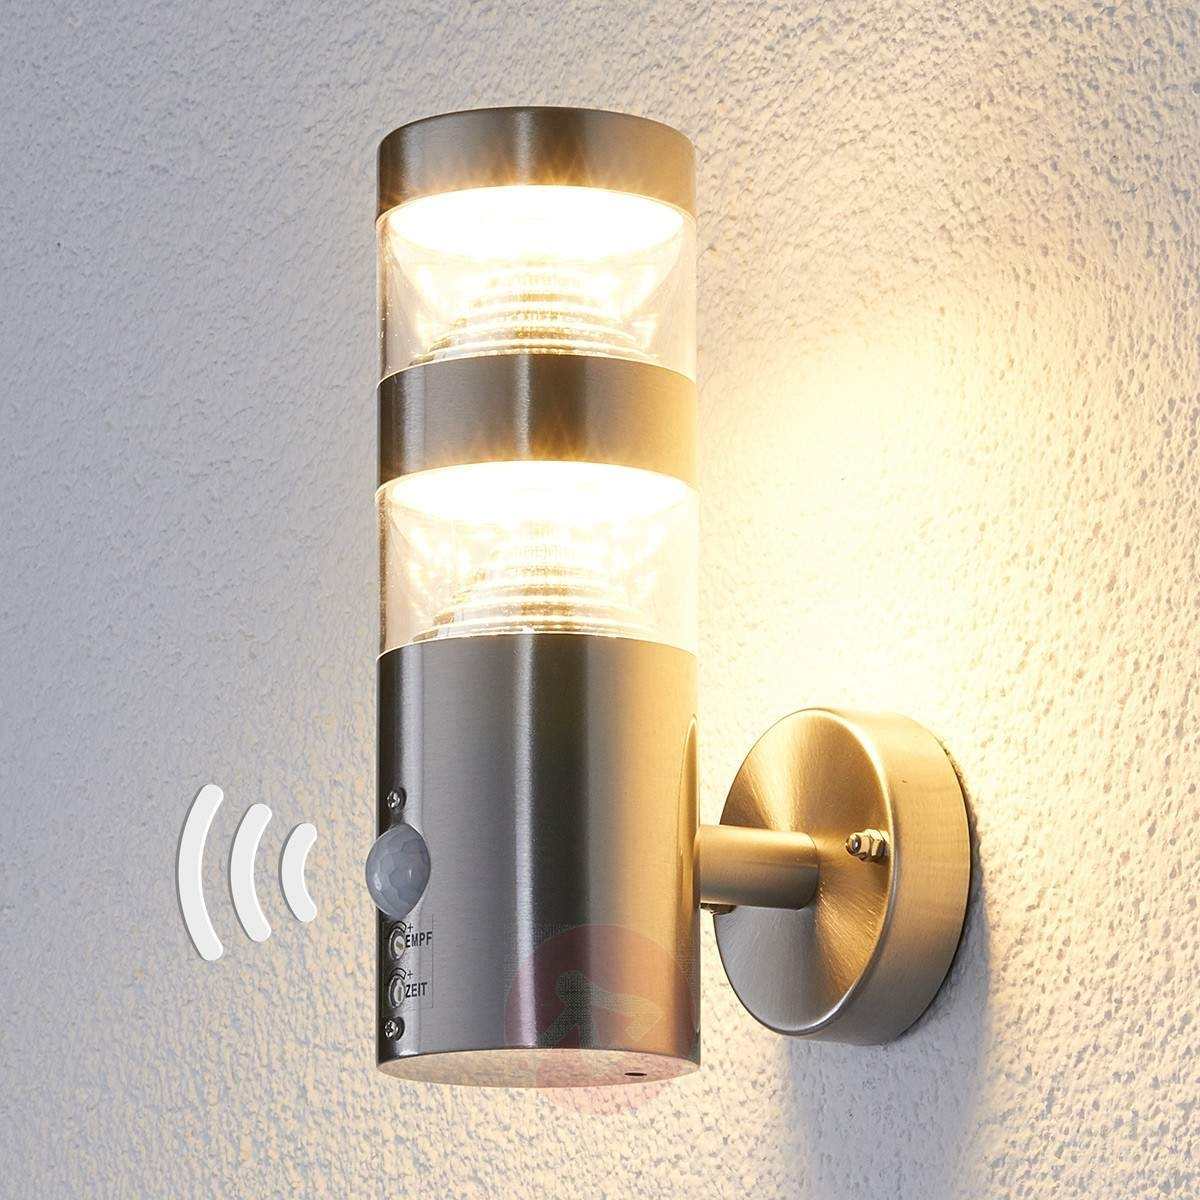 Popular Photo of Led Outdoor Wall Lights Lanea With Motion Sensor